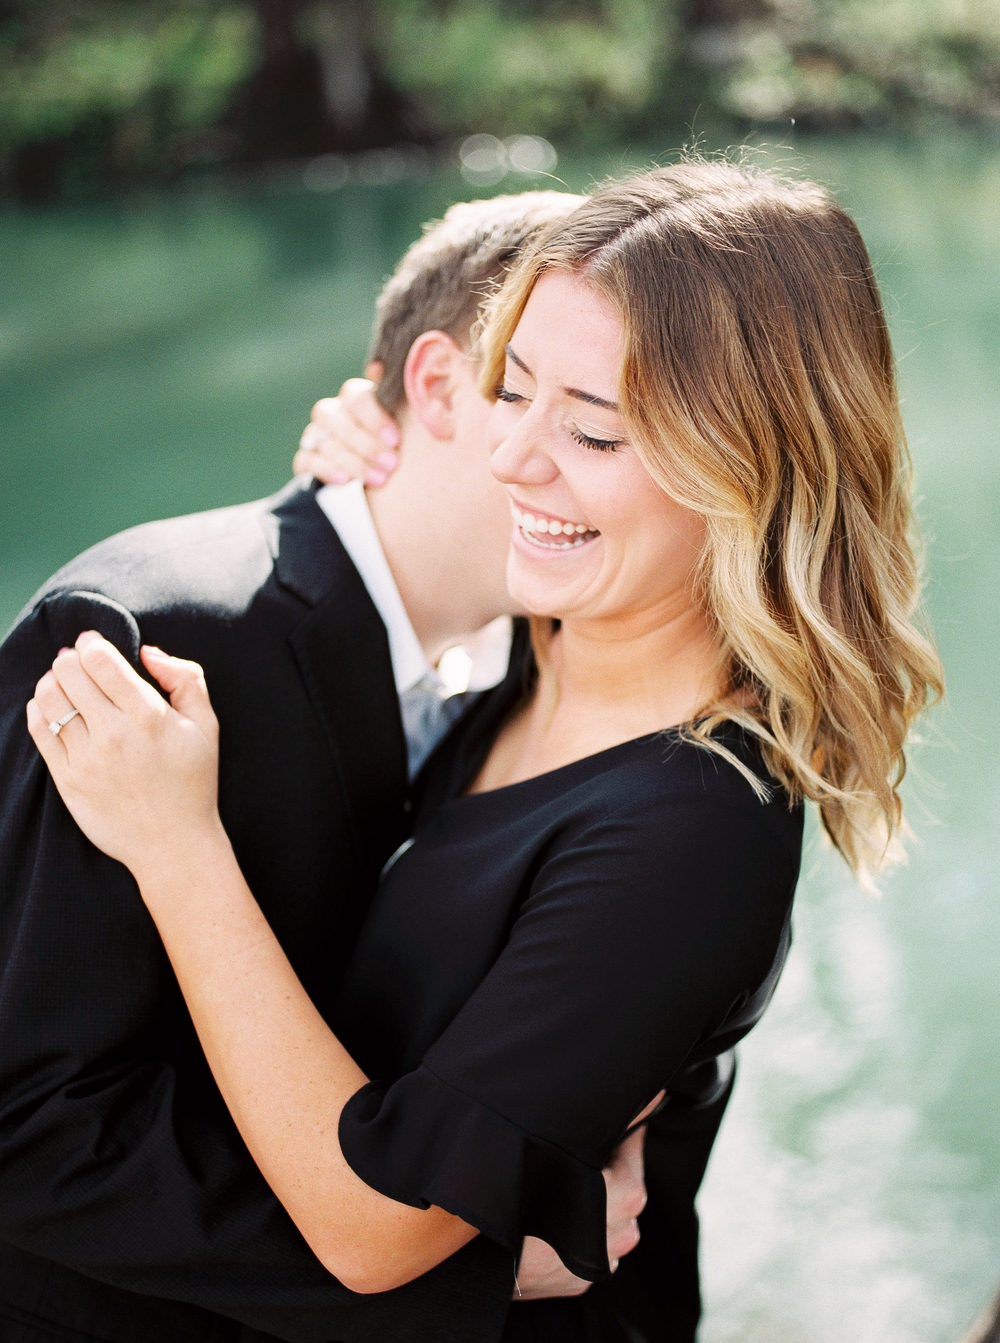 Kali + Thomas Engagements-21.jpg